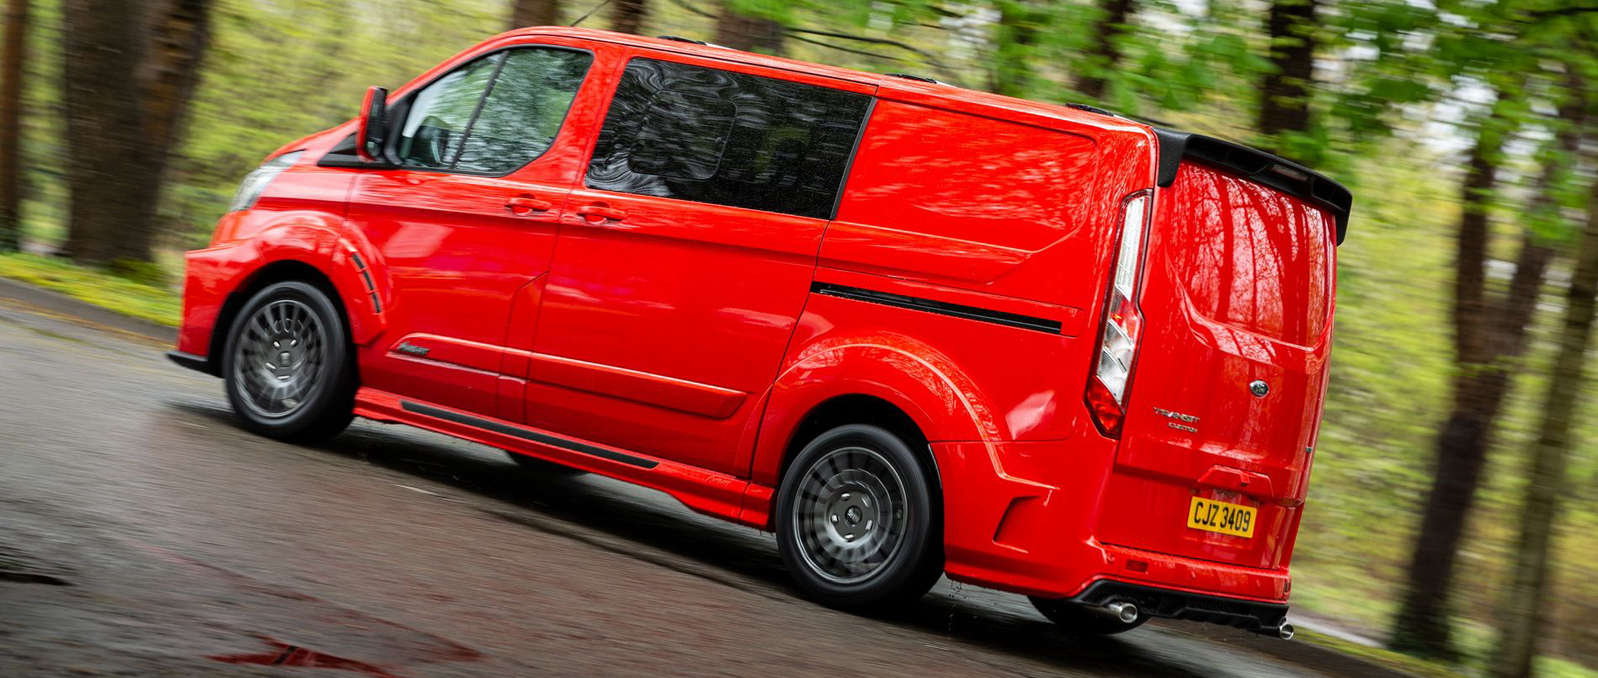 New Red Van